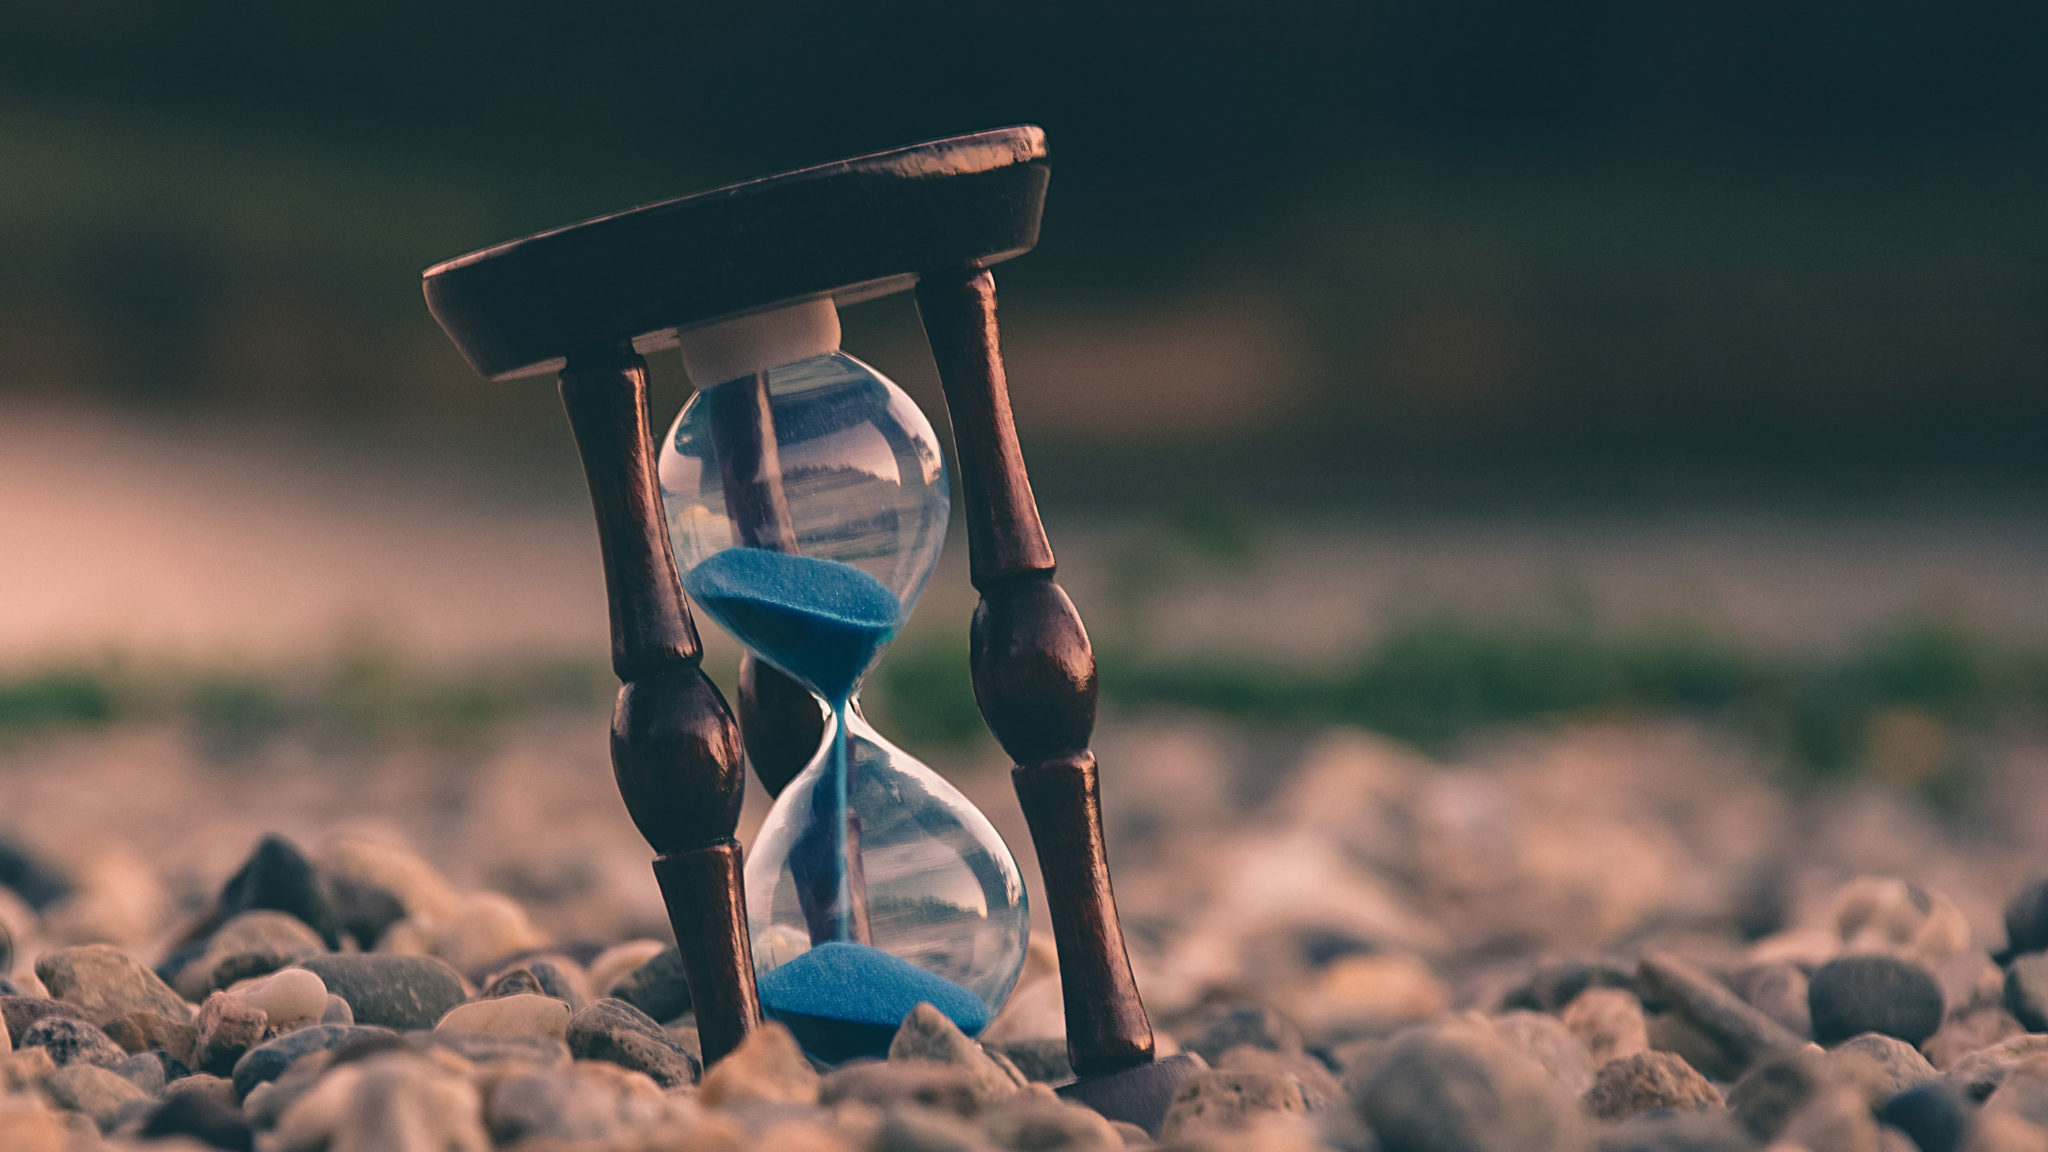 Hourglass with blue sand on a rocky surface.